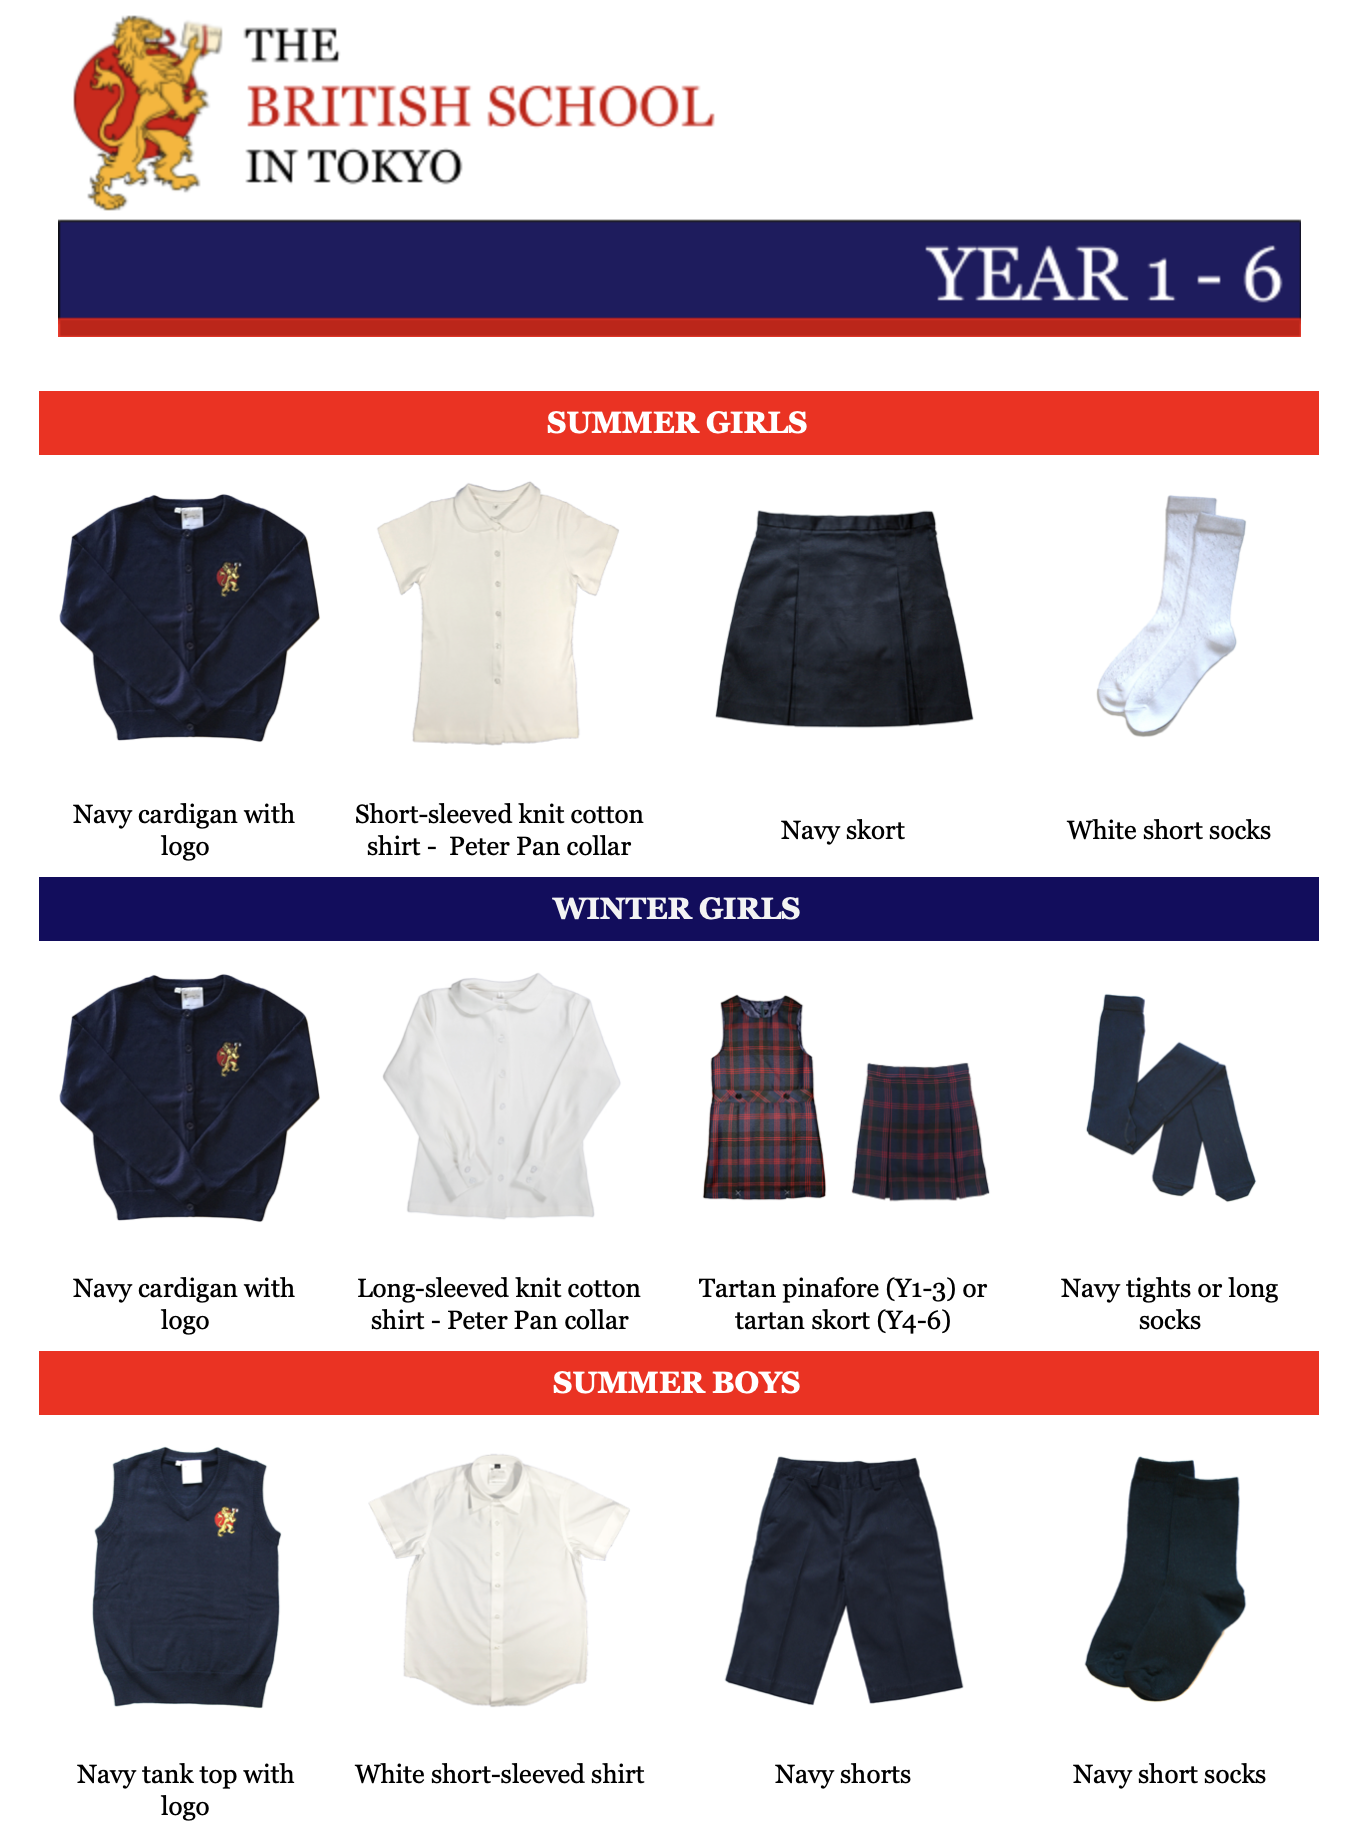 bst-uniform-guide-3.png